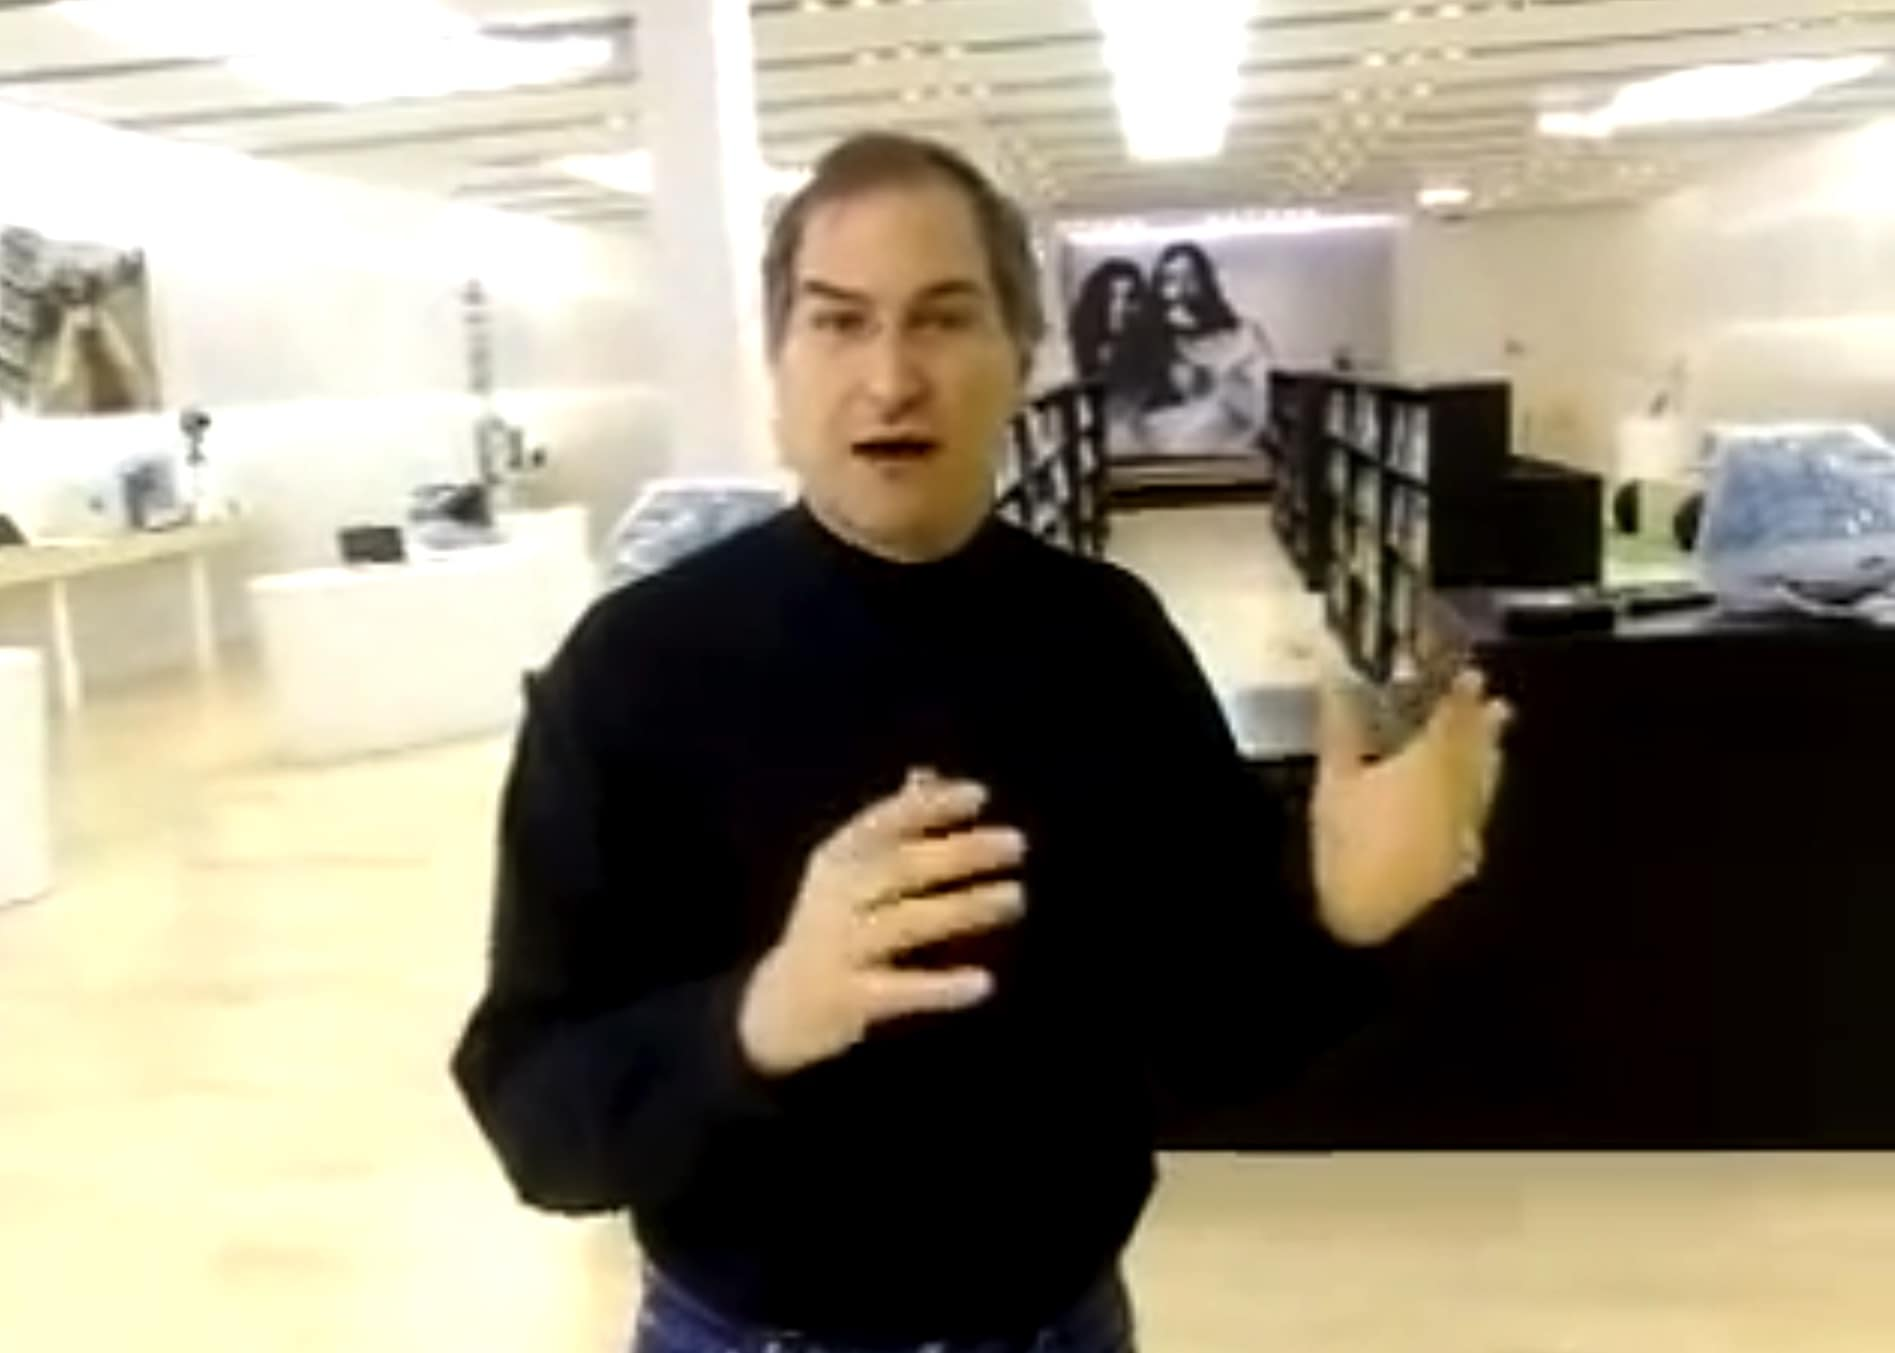 Steve Jobs offers a sneak peek at the first Apple store prior to its opening.